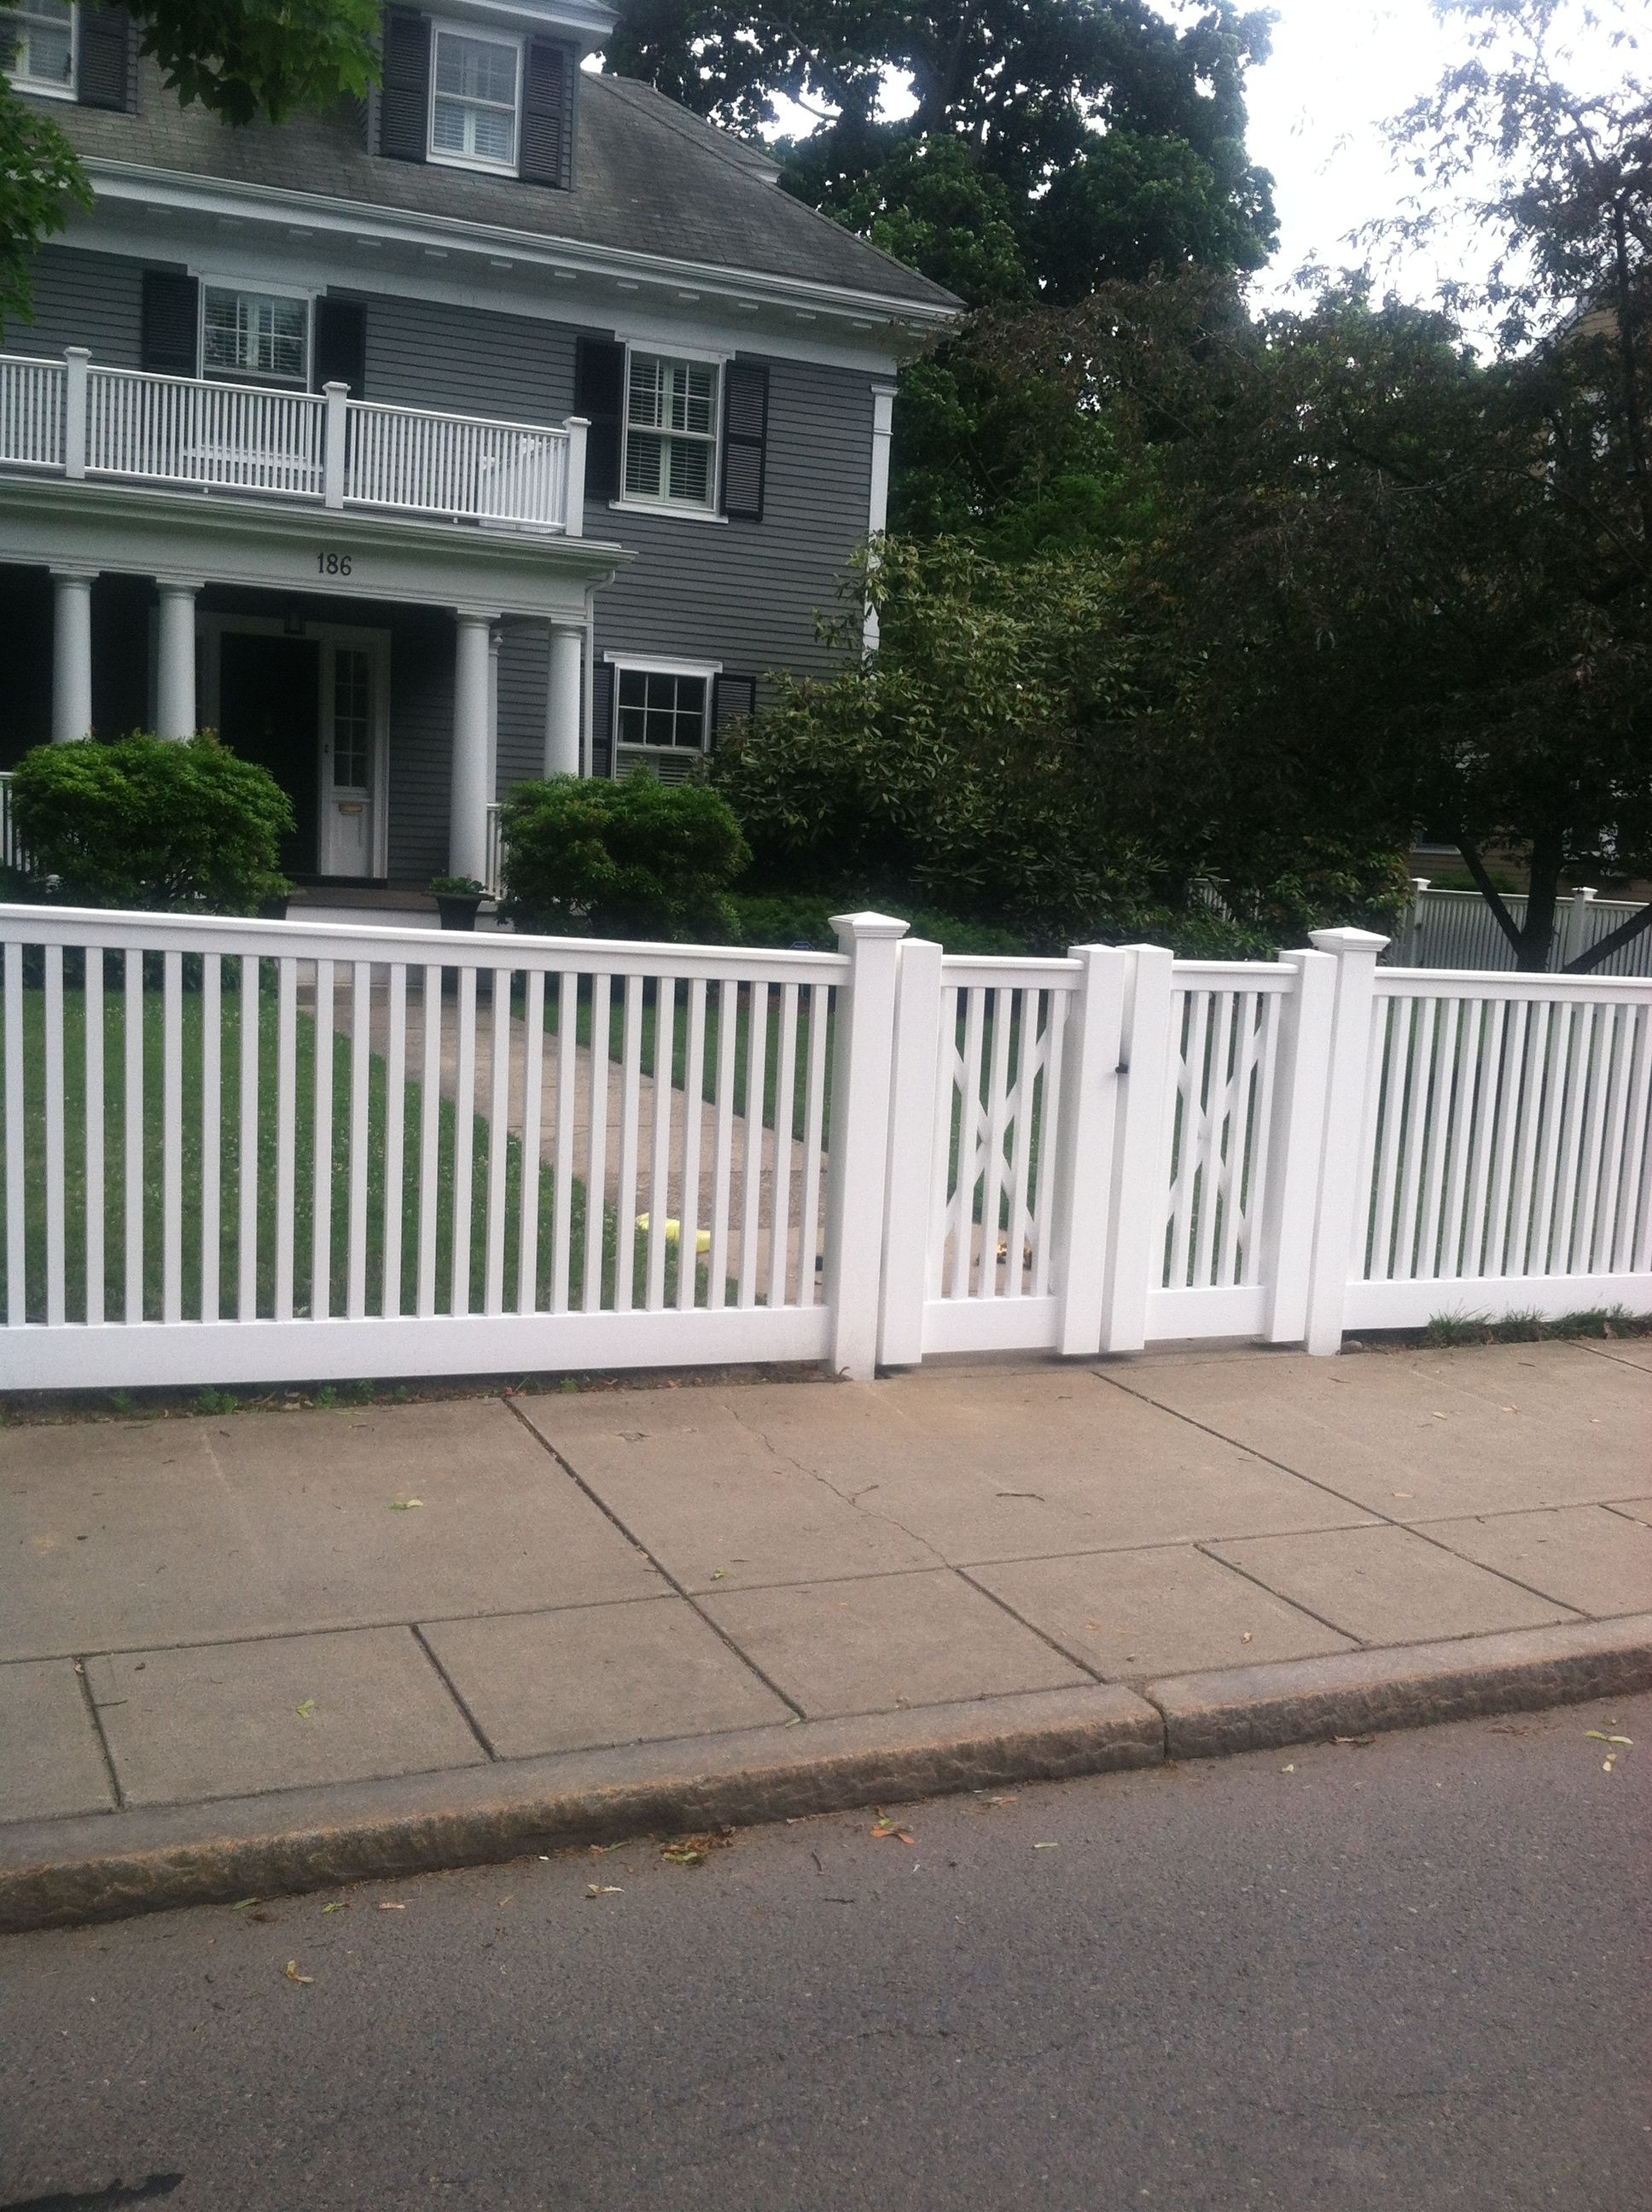 Double Fence Gate the cohasset t-top 2-rail white pvc fence with double gate | open